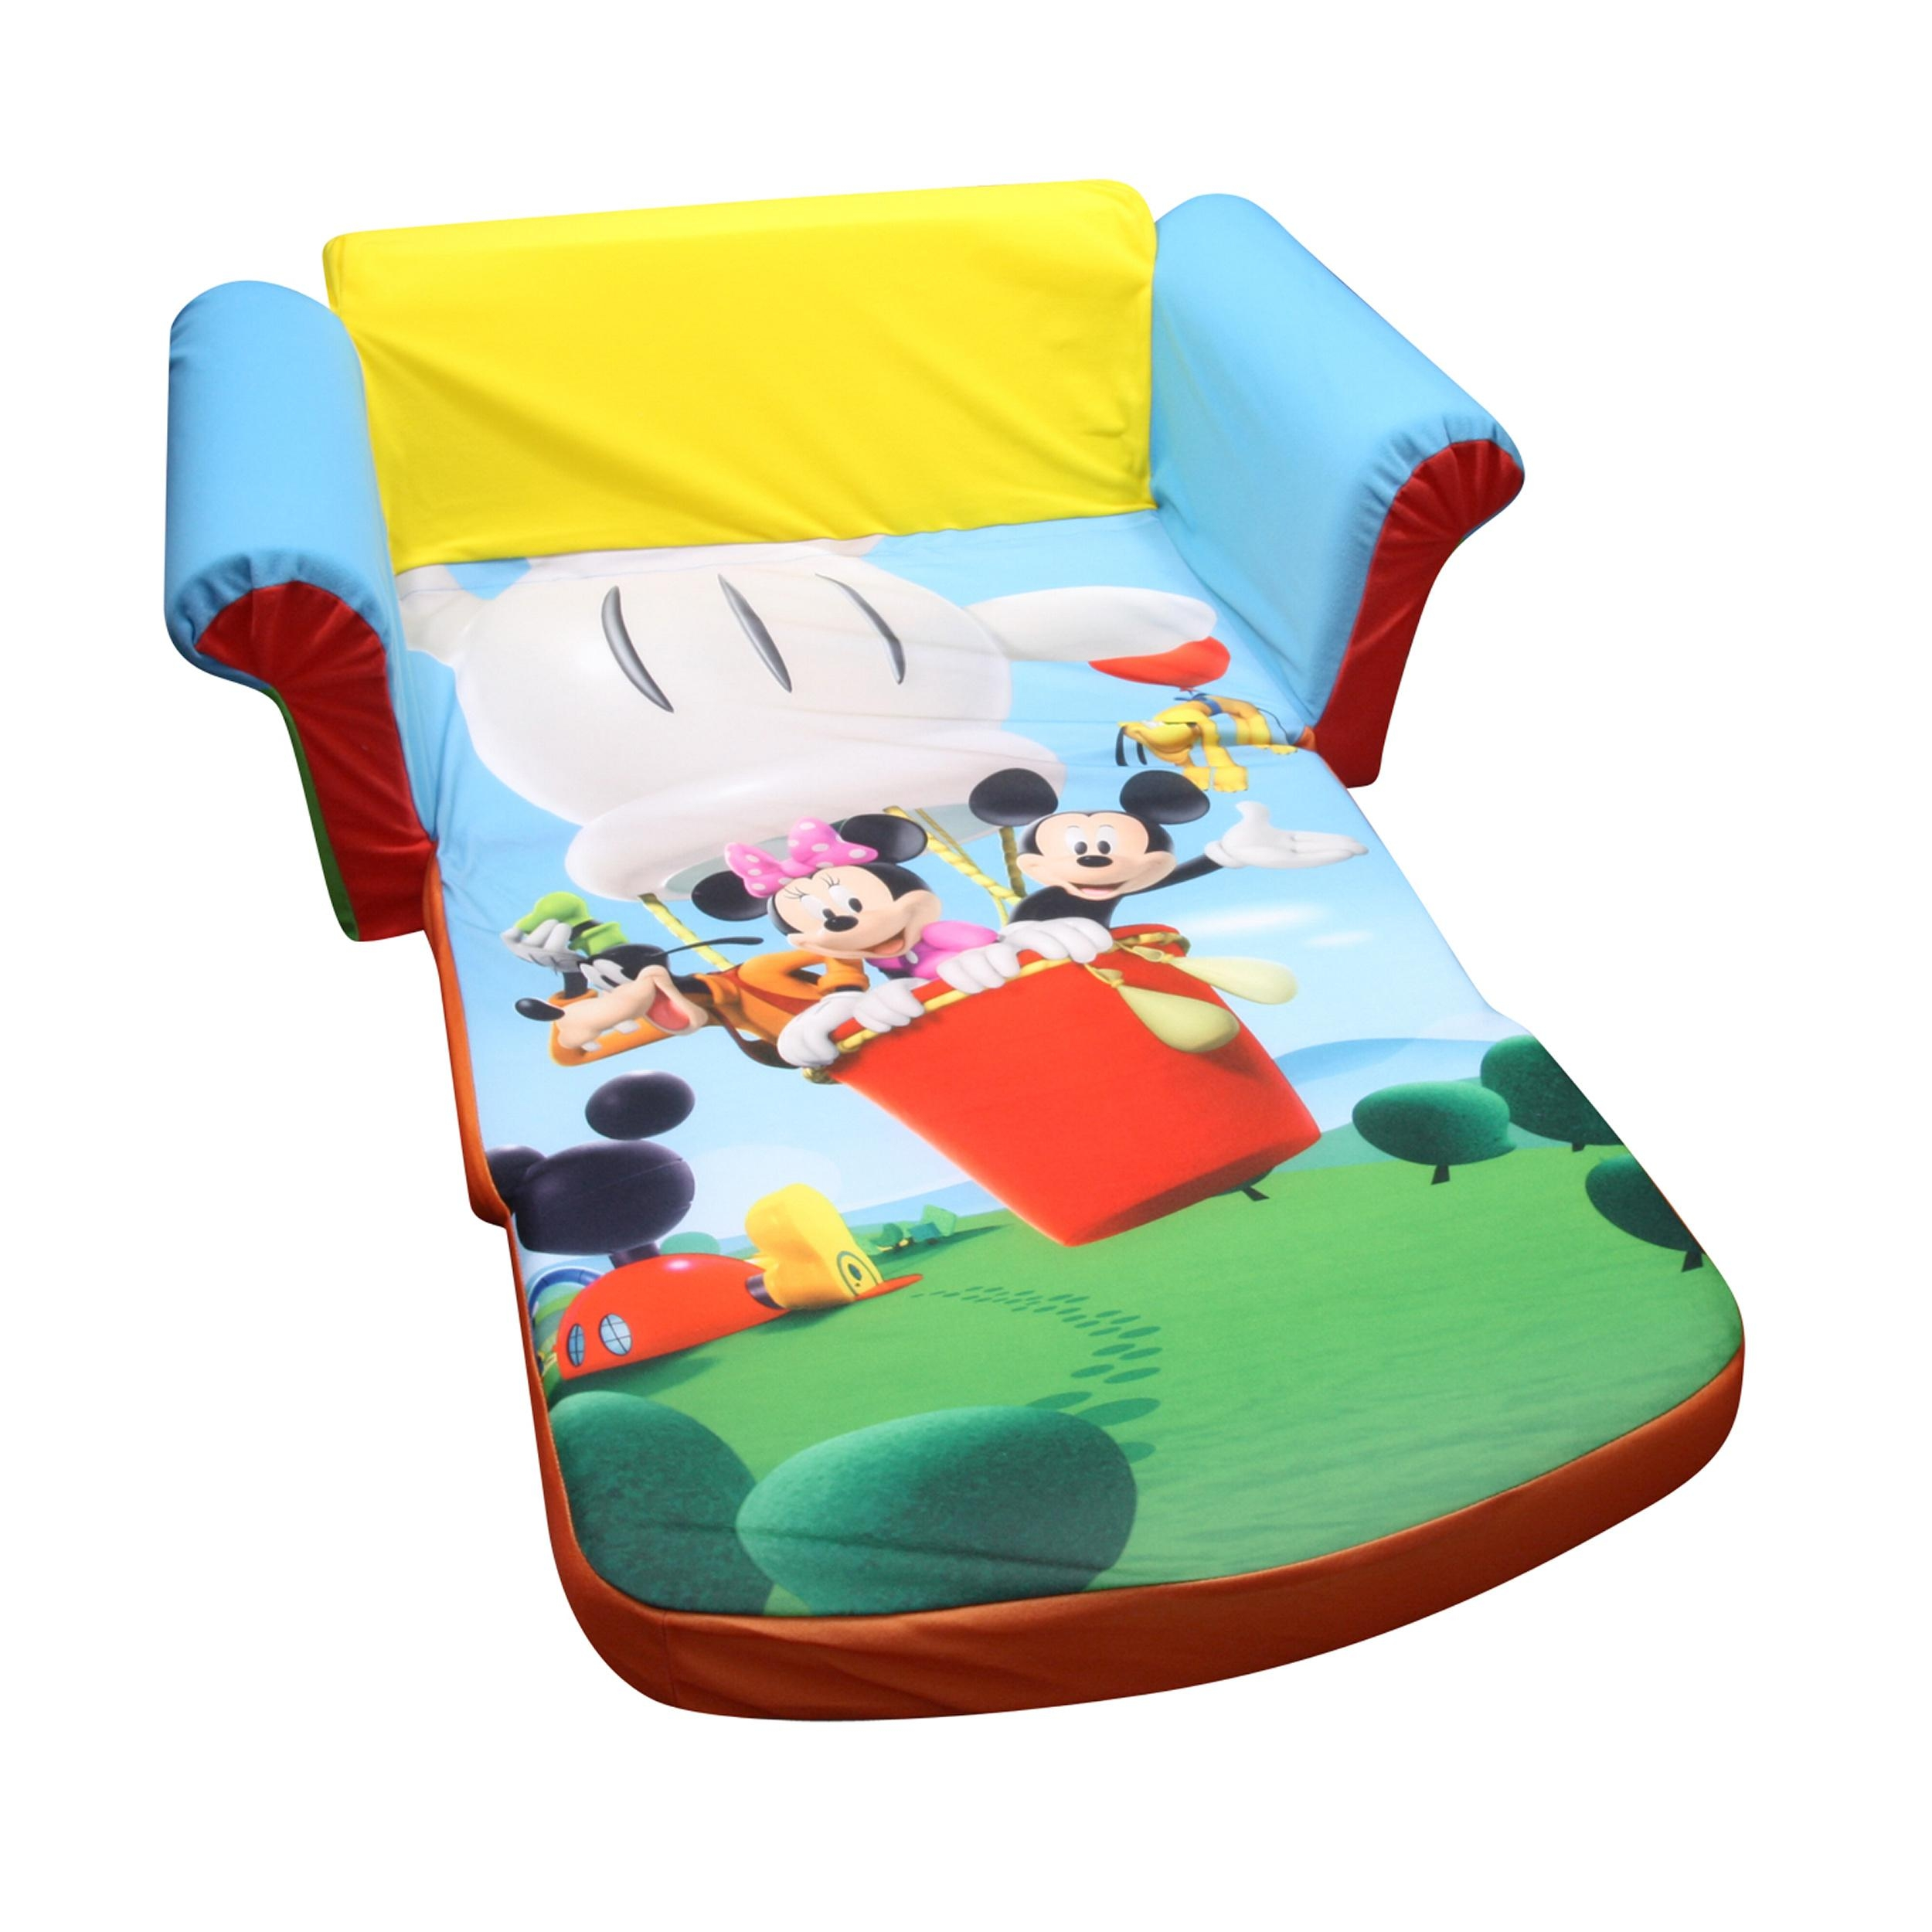 Marshmallow Furniture, Children's 2 In 1 Flip Open Foam Sofa Regarding Mickey Flip Sofas (Image 5 of 20)